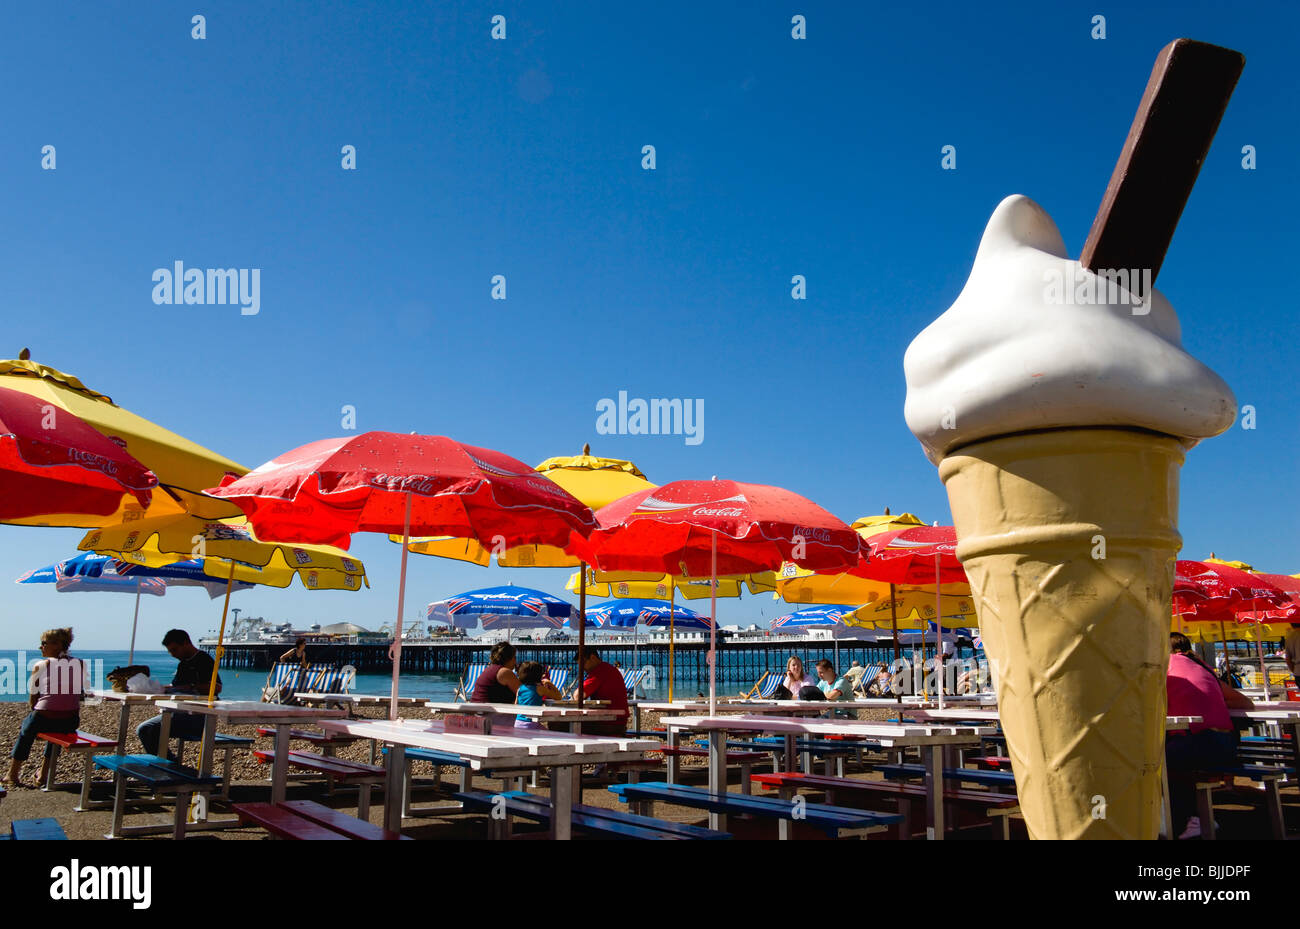 england east sussex brighton the pier with people under sunshade umbrellas by tables: metre giant umbrella